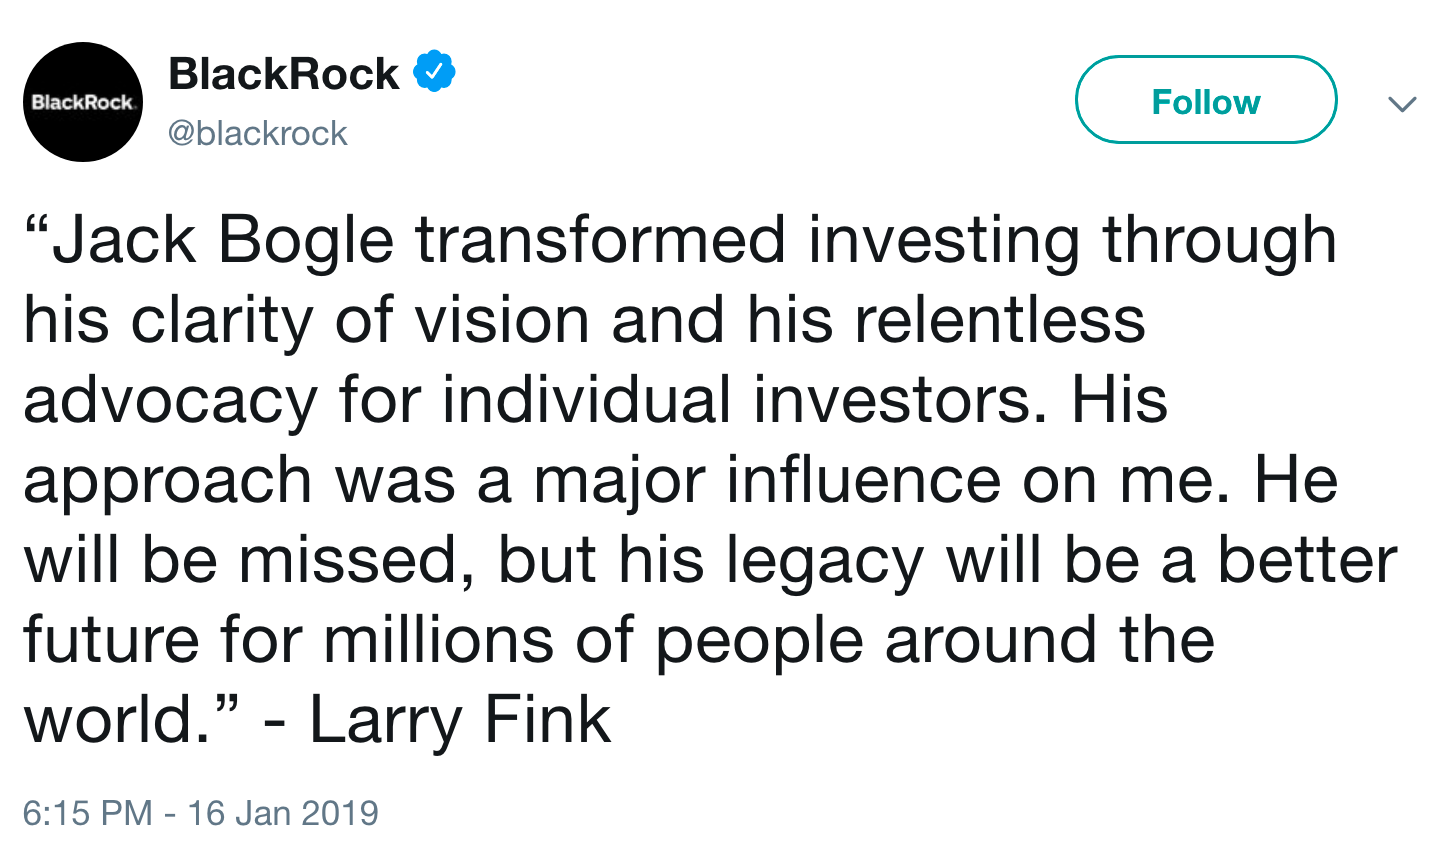 Tweet from BlackRock